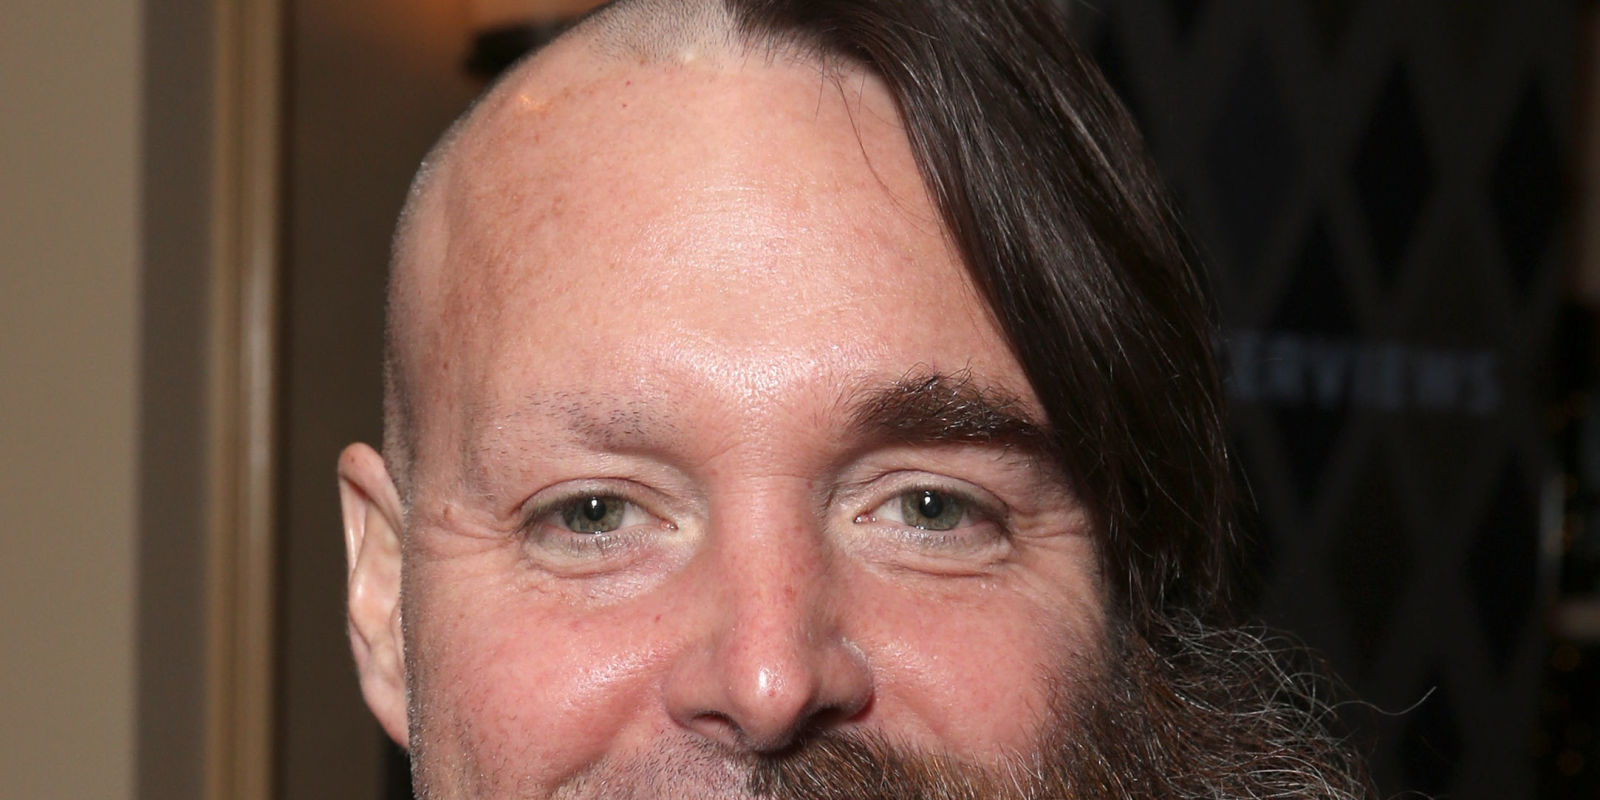 Will Forte Reveals His Half-Shaved Beard